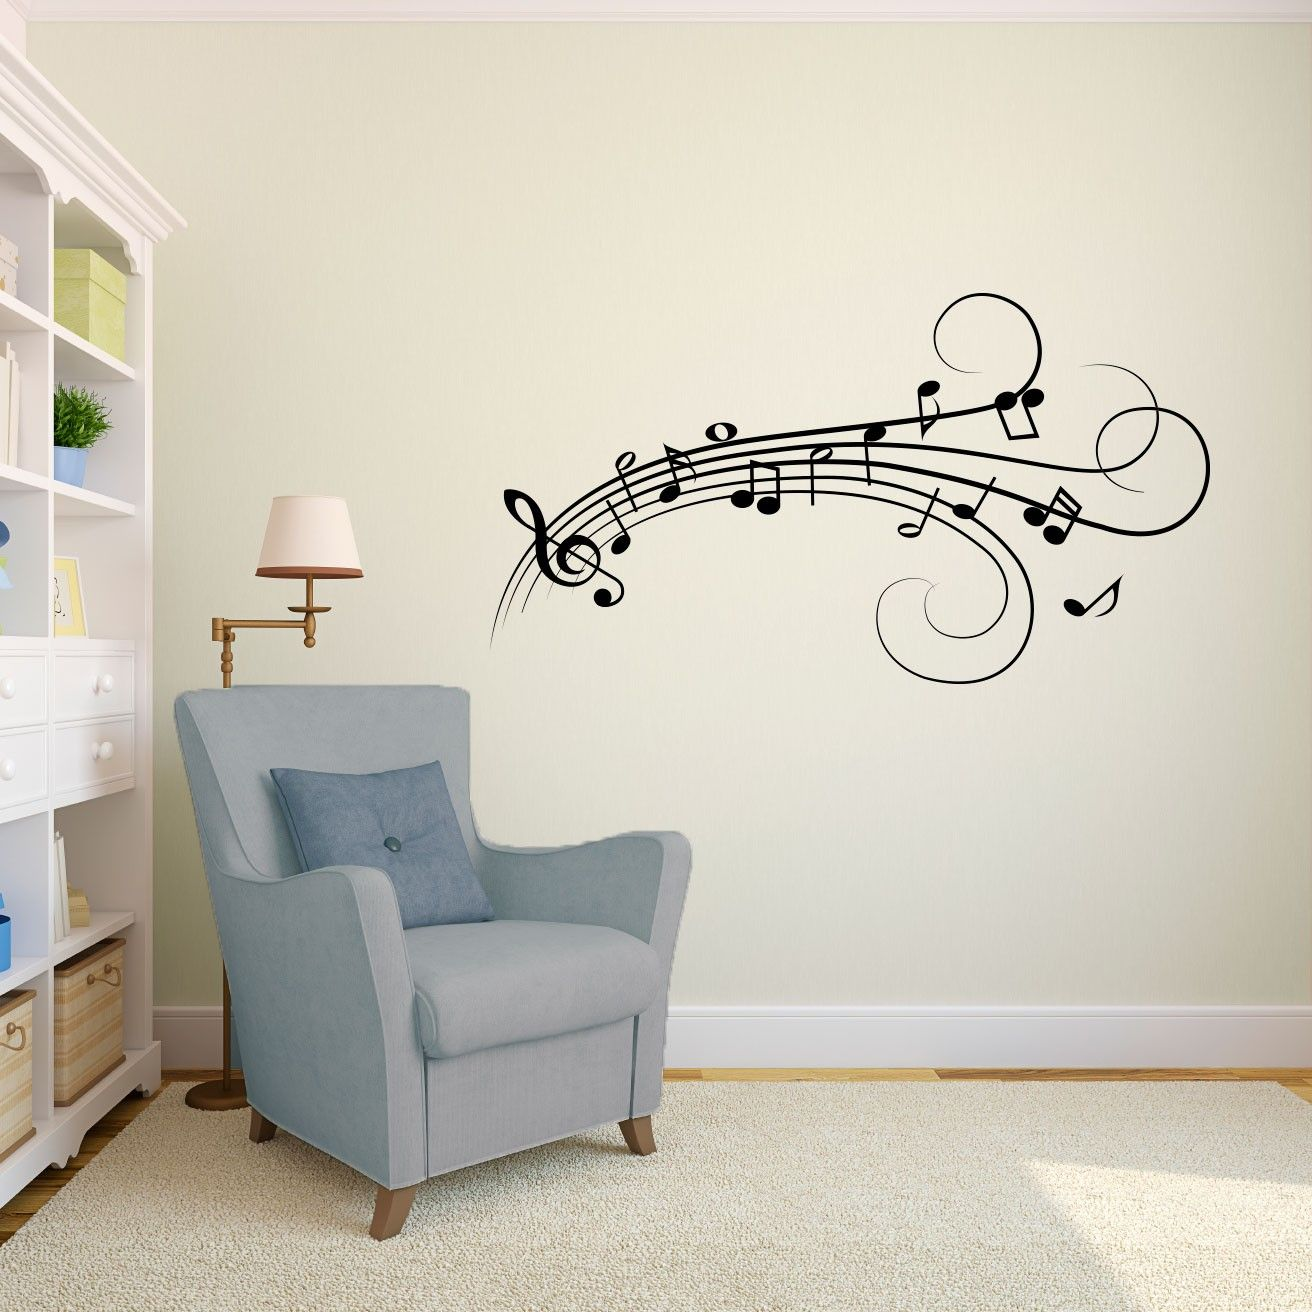 Music Notes - Vinyl Wall Art Decal for Homes, Offices ...